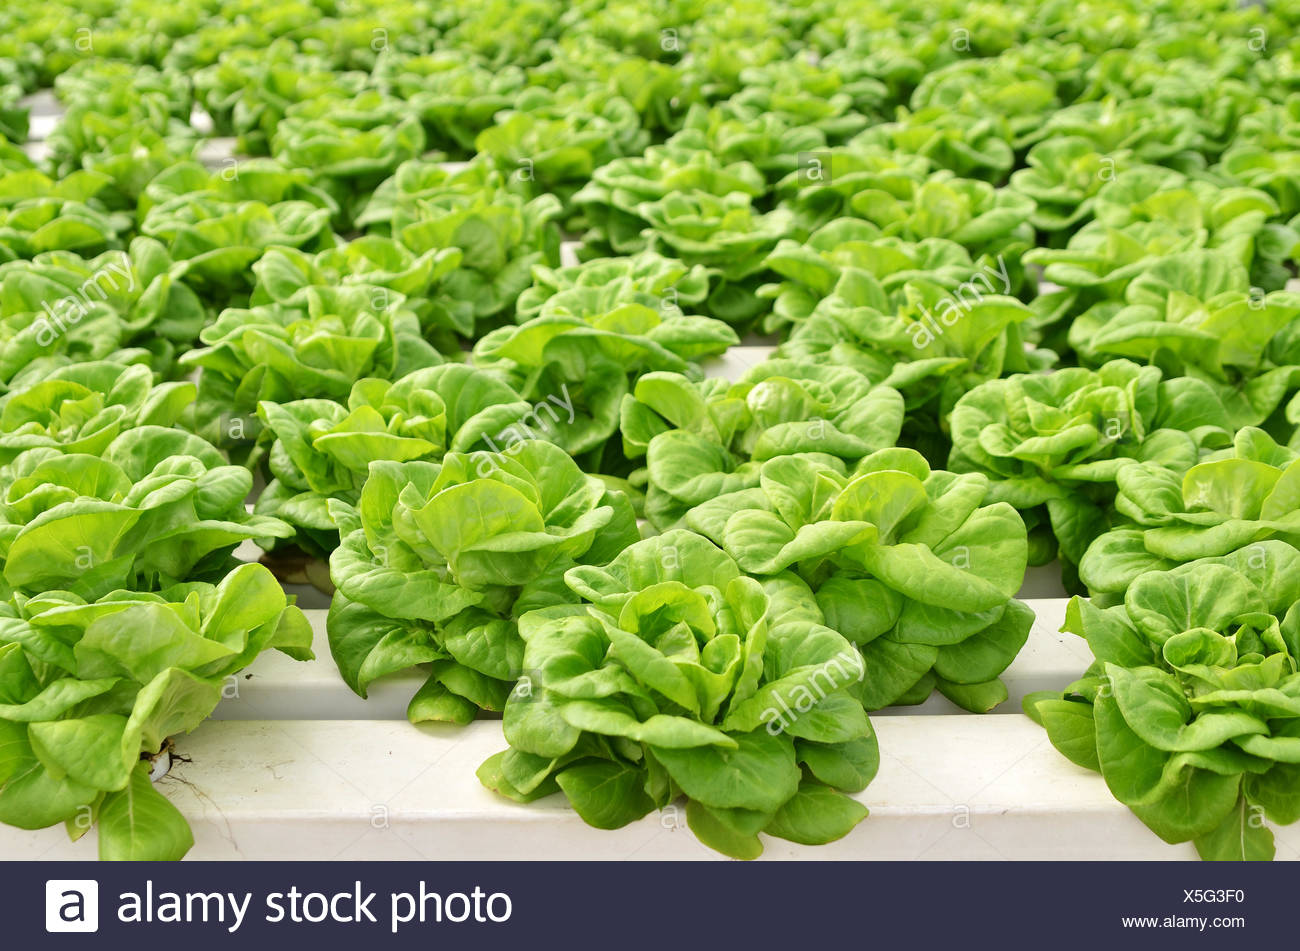 Commercial greenhouse soilless cultivation of vegetables Stock Photo